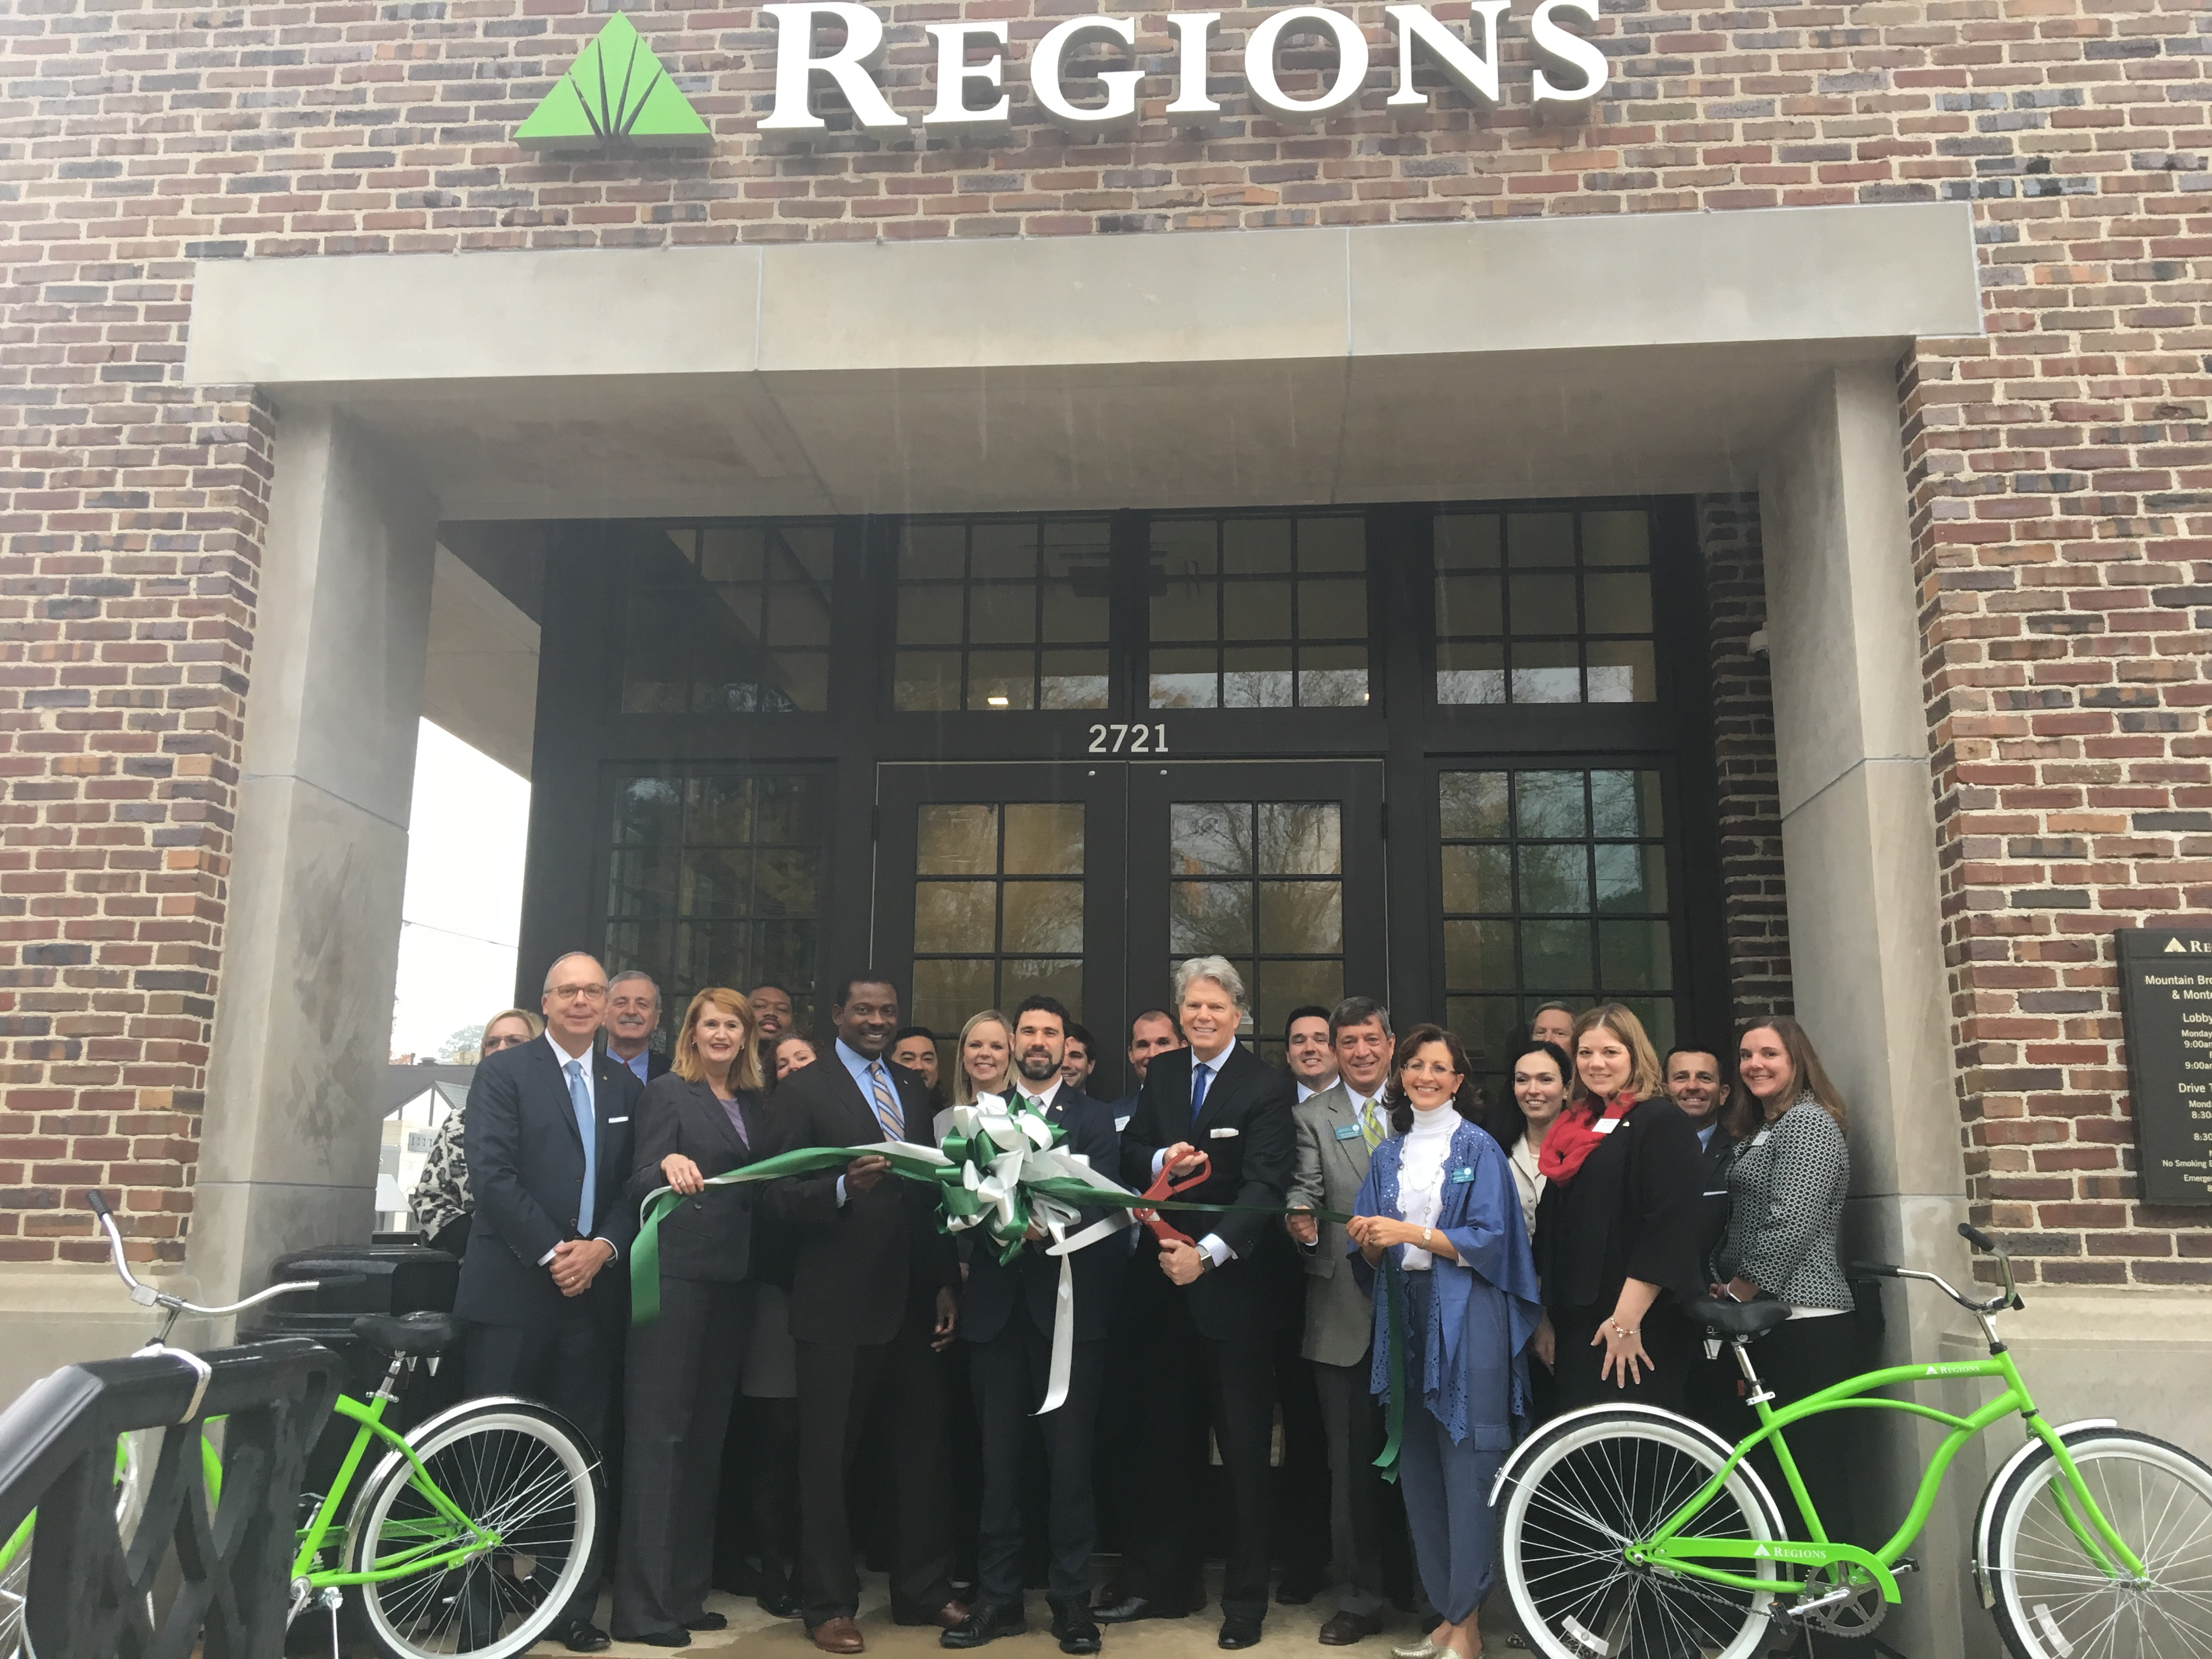 Modern Technology  More Personal Service  Regions Bank Cuts